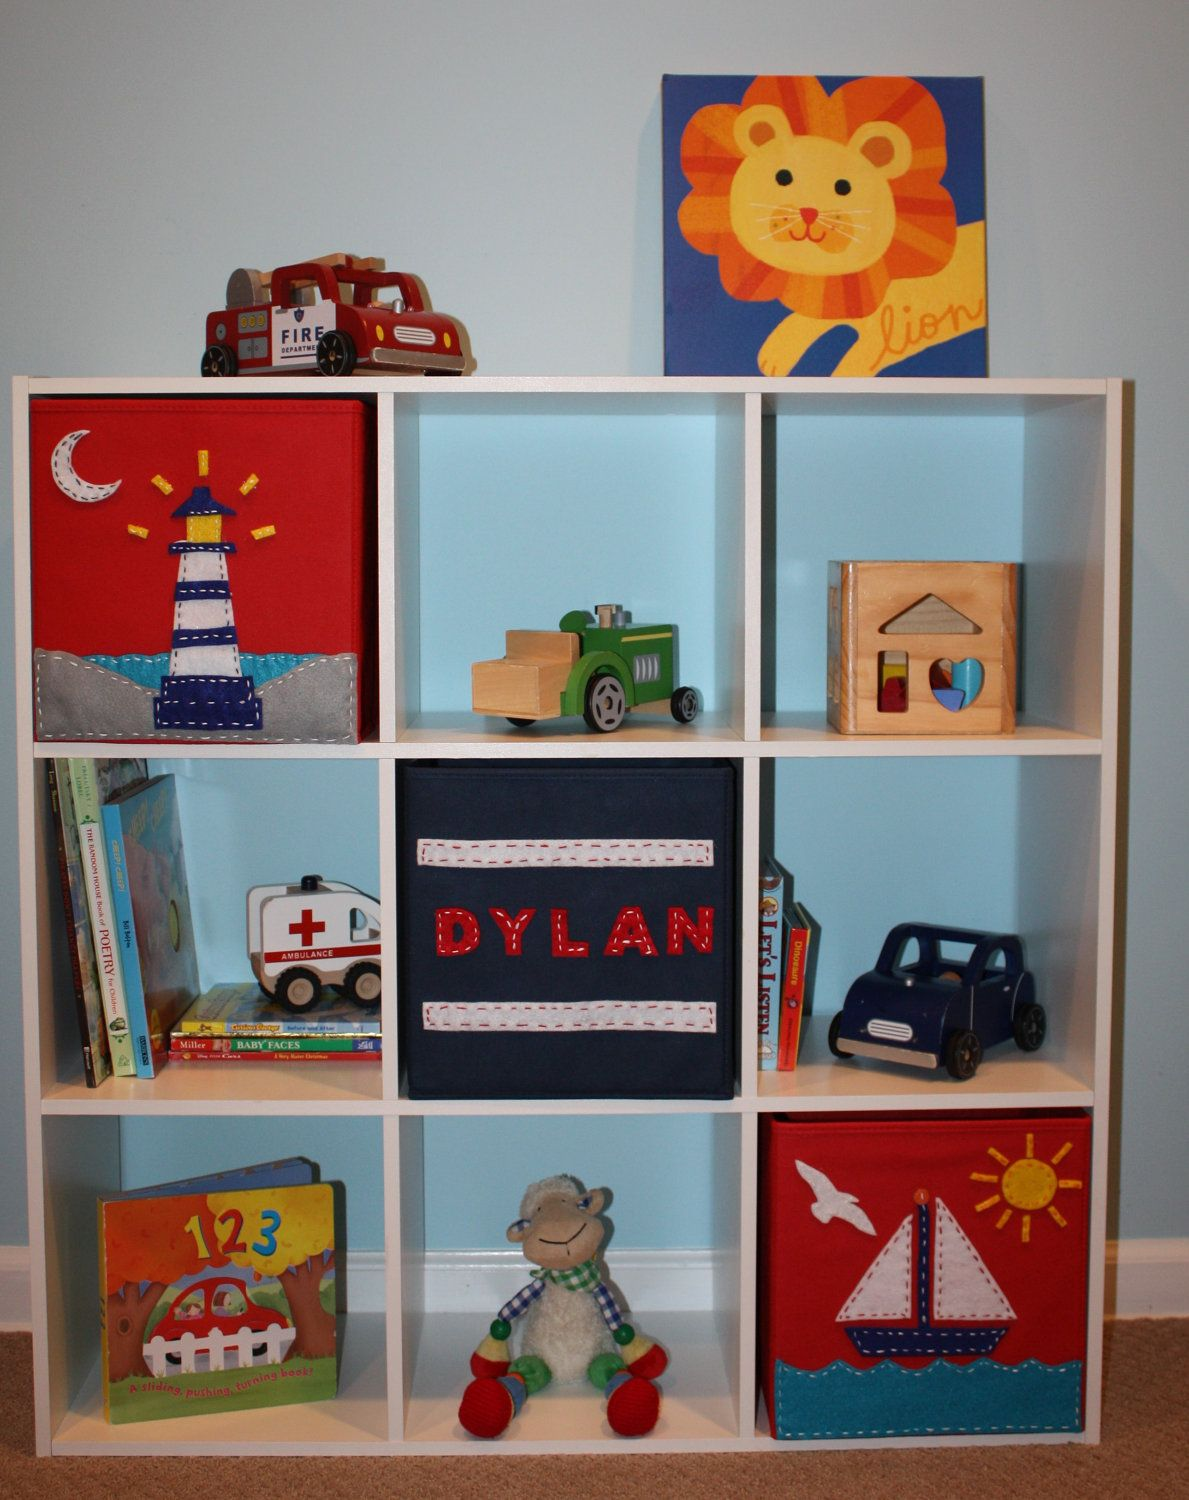 Lovely Personalized Storage Bins For Kids #1 - Personalized Storage Bin For Toy Room